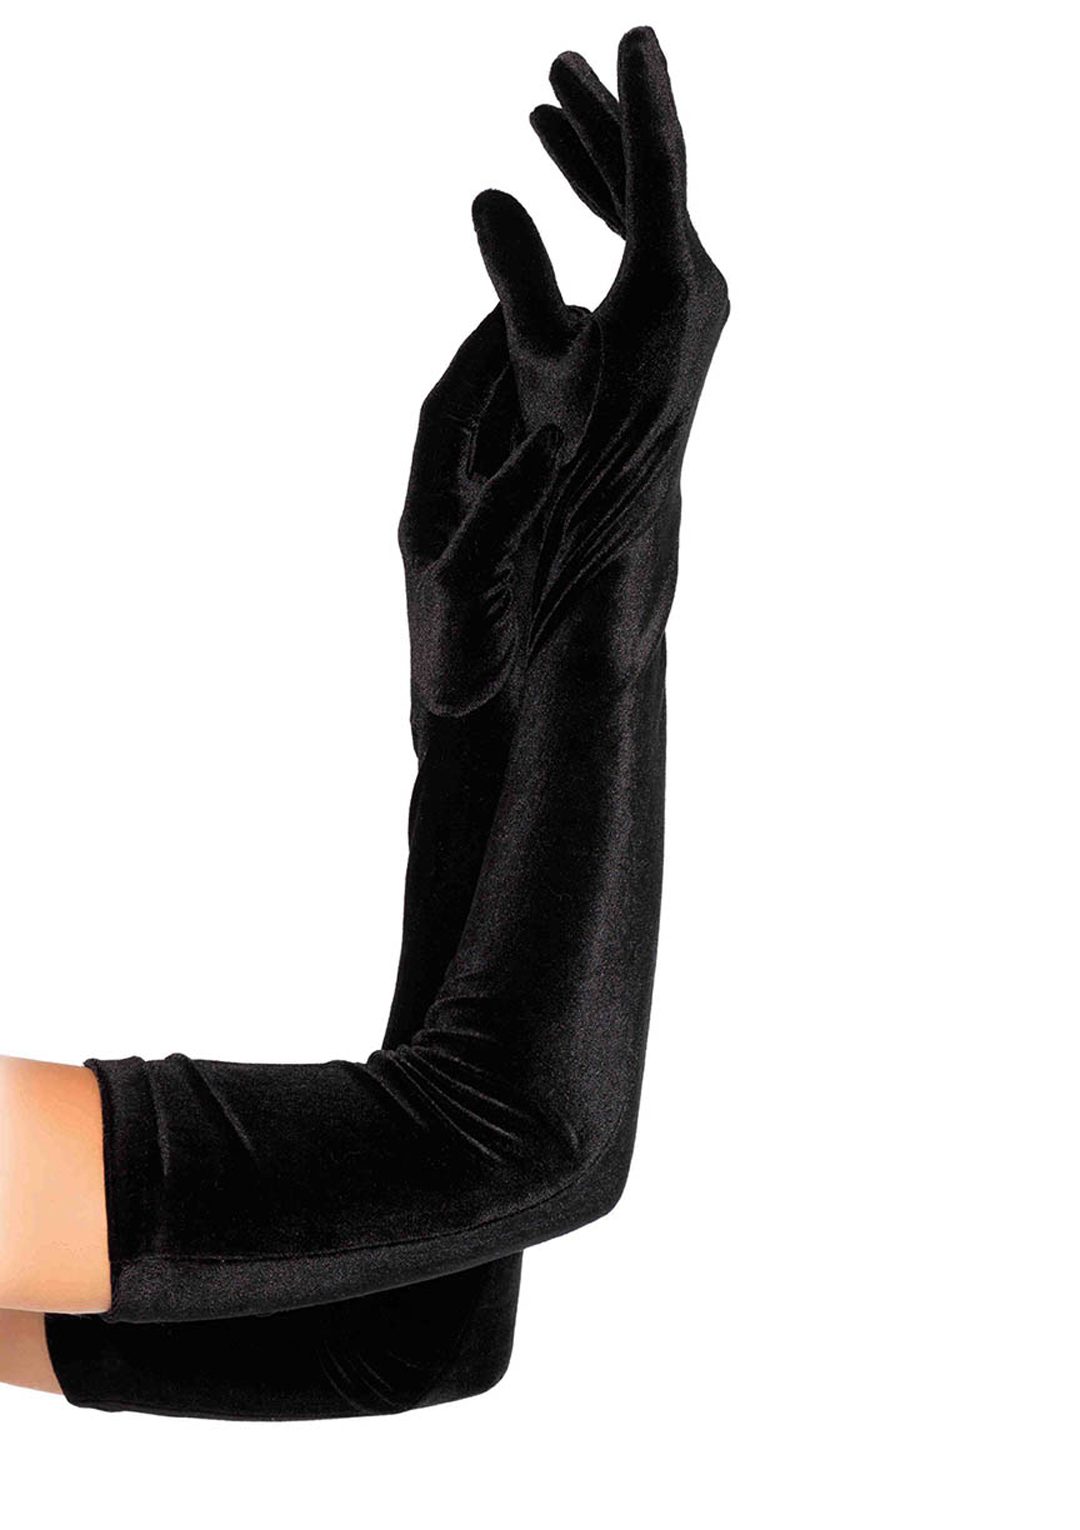 Black Stretch Velvet Opera Length Gloves